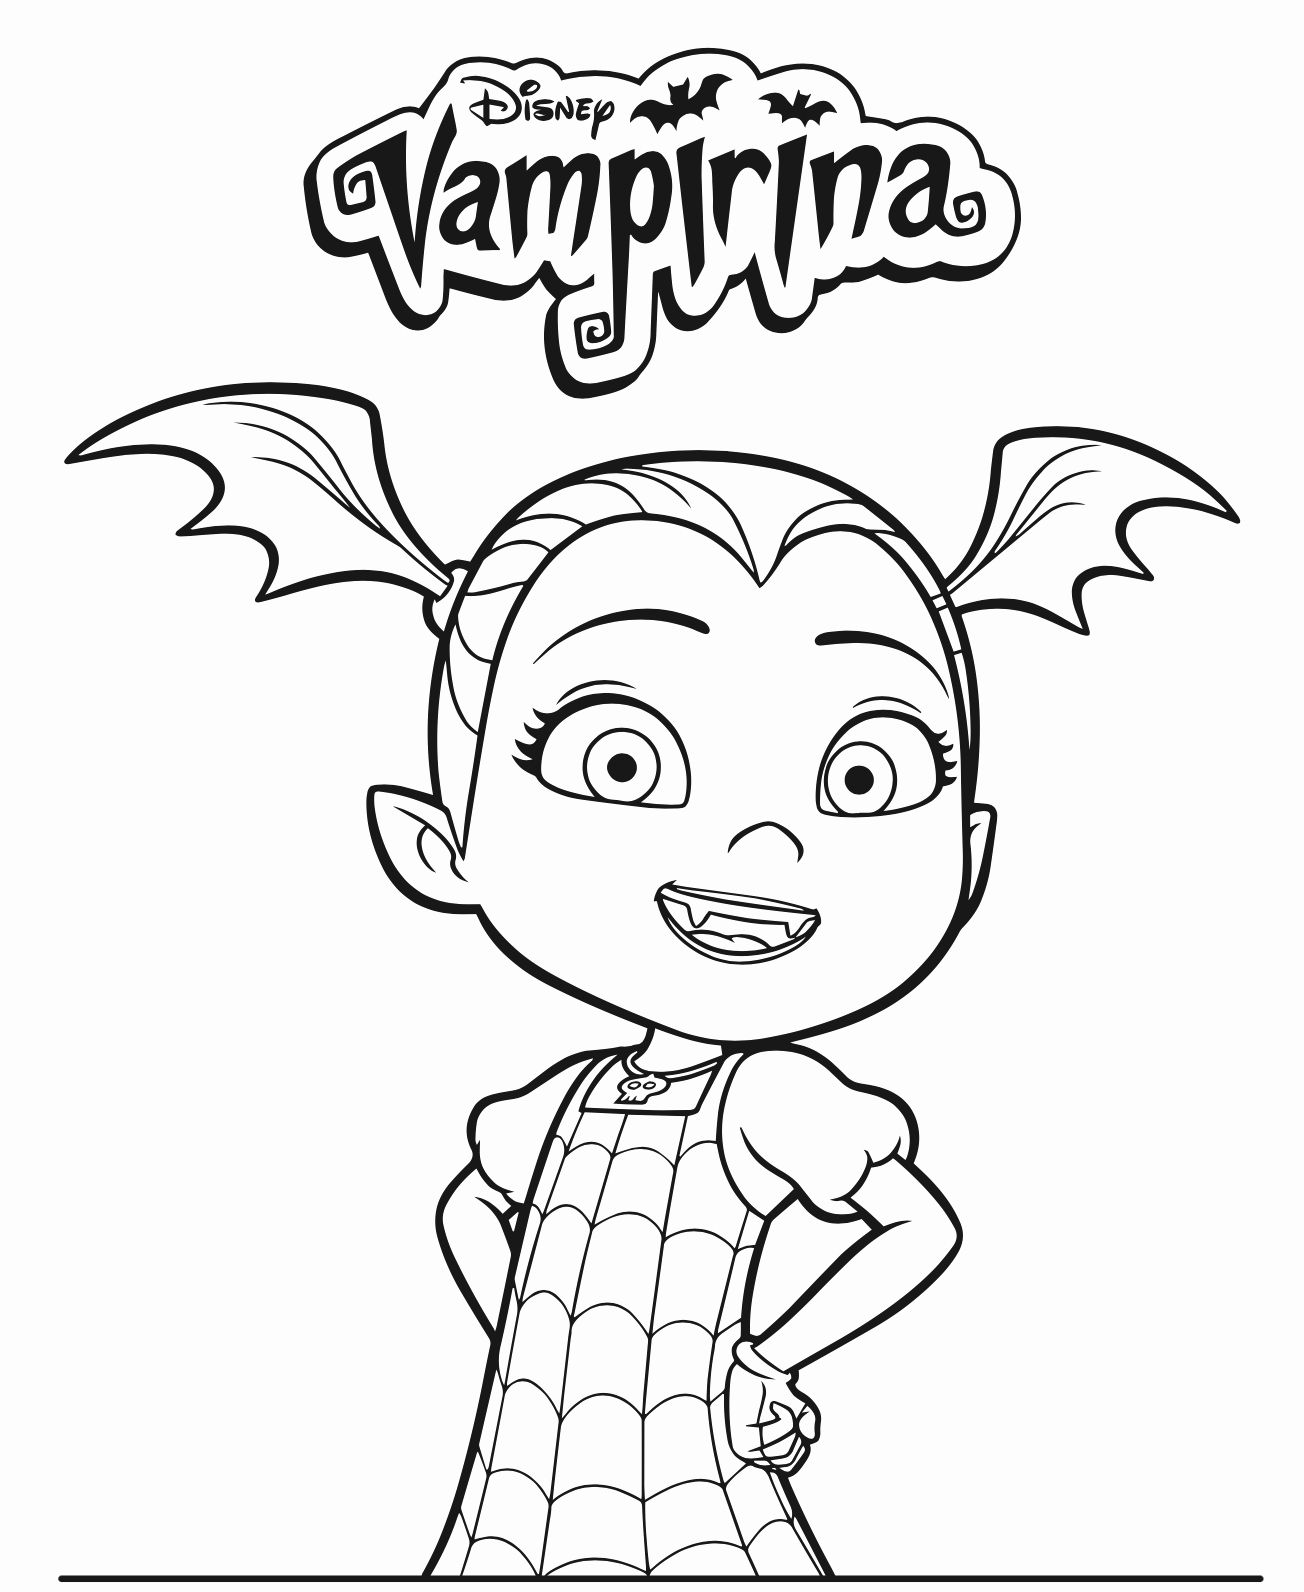 Coloring Pages Disney Junior Awesome Disney Junior Vampirina Coloring Pages Dvd Give In 2020 Disney Coloring Pages Doc Mcstuffins Coloring Pages Unicorn Coloring Pages